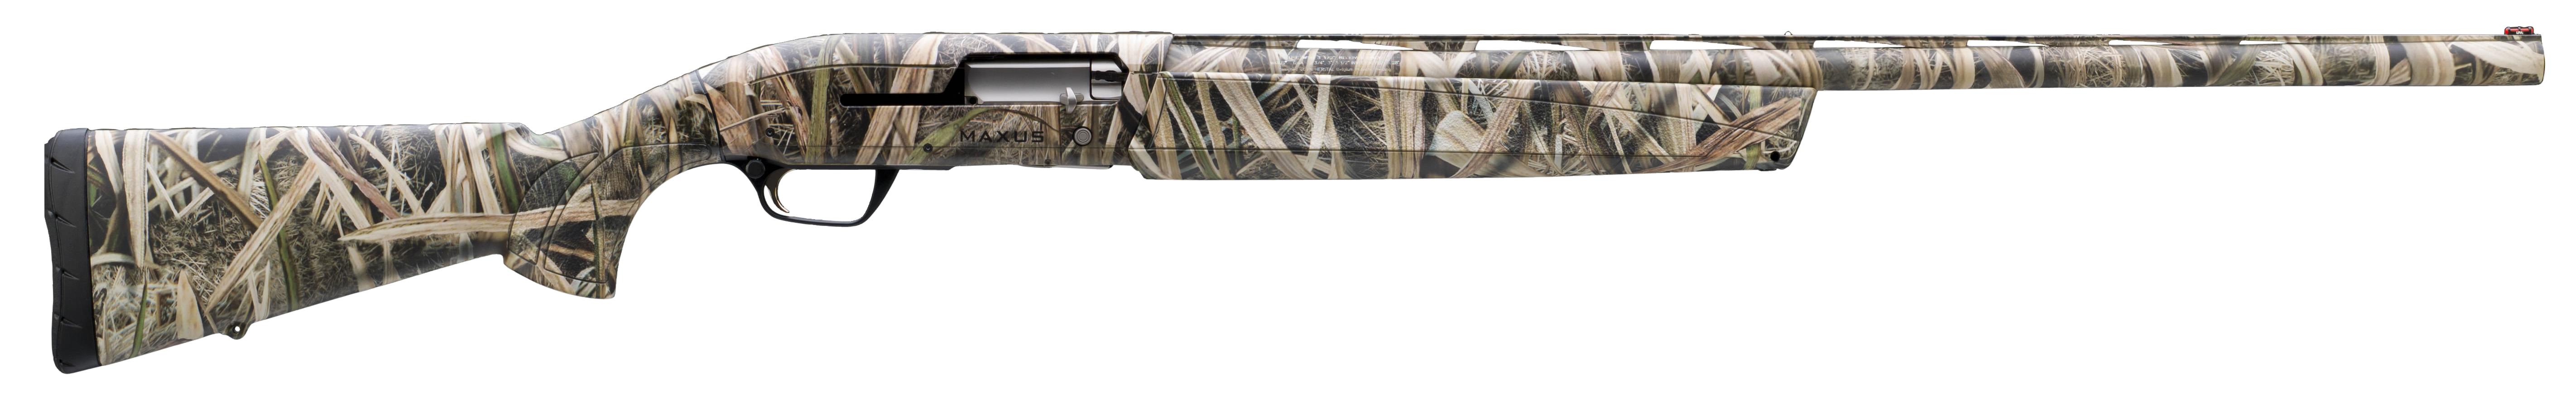 Browning Maxus Semi-Auto Shotgun 3.5'' 12 Gauge 26'' Camo - Synthetic - Mossy Oak Shadow Grass Blades